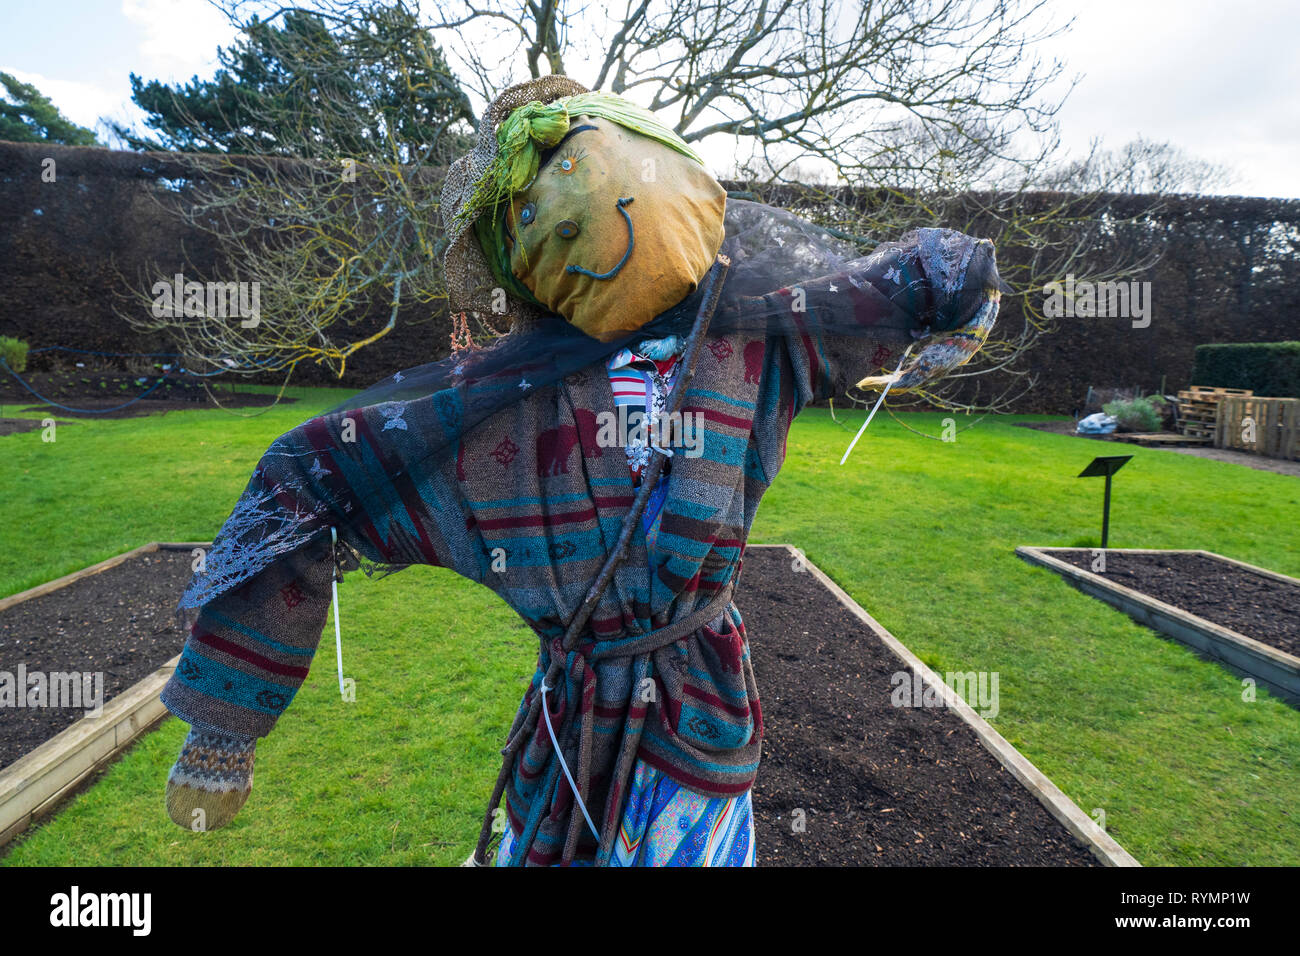 Scarecrow in Royal Botanic Garden Edinburgh, Scotland UK - Stock Image